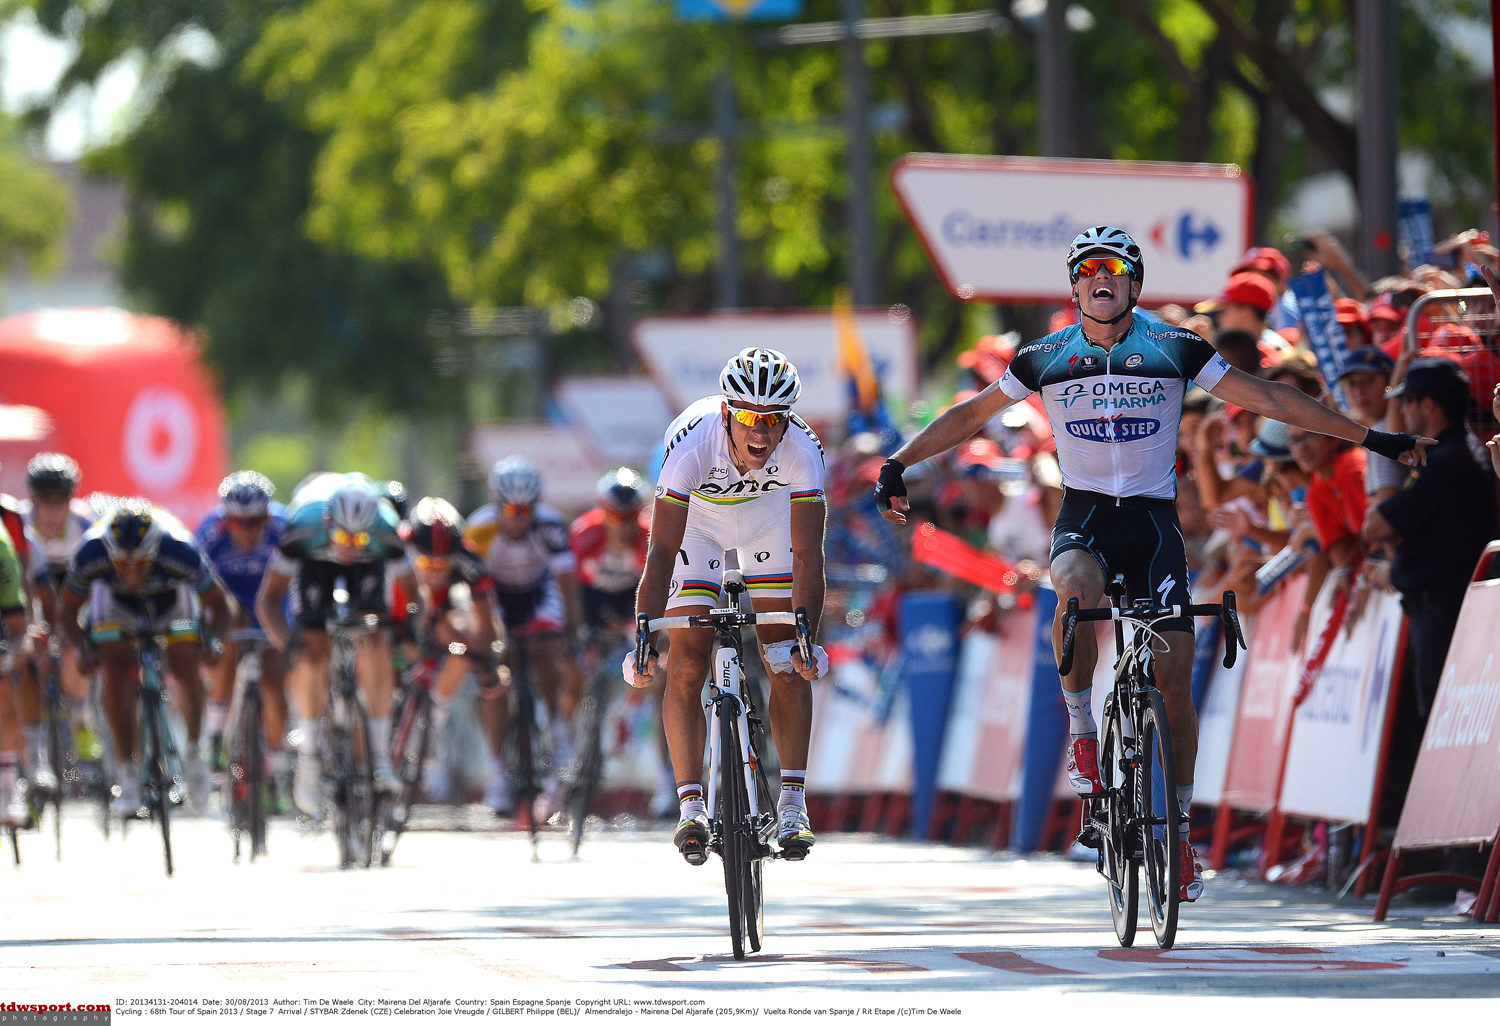 Zdenek beats the world champion and wins stage in Vuelta!